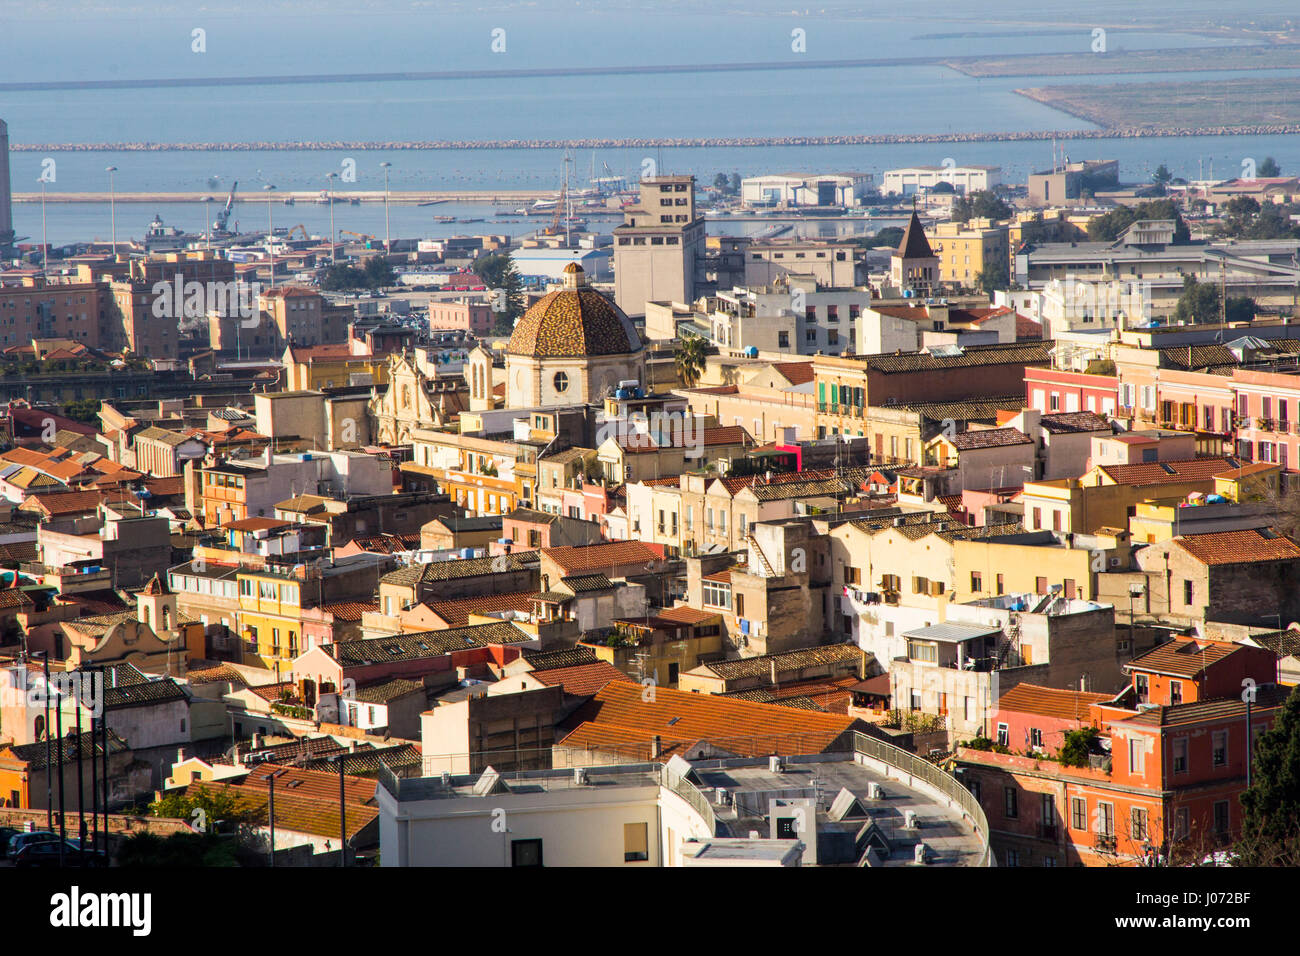 The capital city of Cagliari gleams in the Sardinian sun, once inspiring D.H. Lawrence to call it the 'white - Stock Image